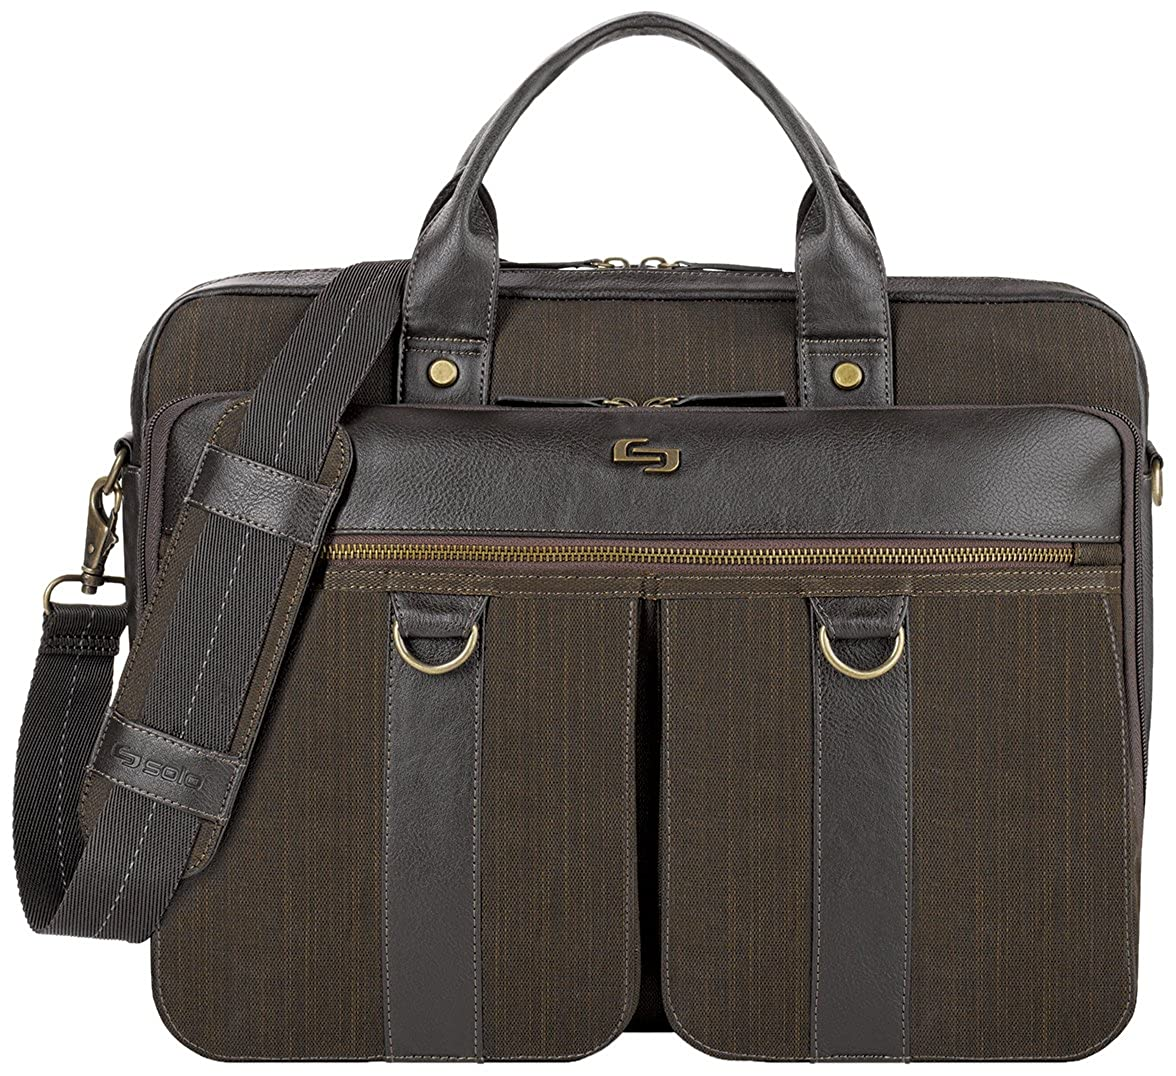 Solo Mercer Briefcase(EXE335) 15.6' Laptop Briefcase, Bradford Collection Brown SOLOD EXE335-3